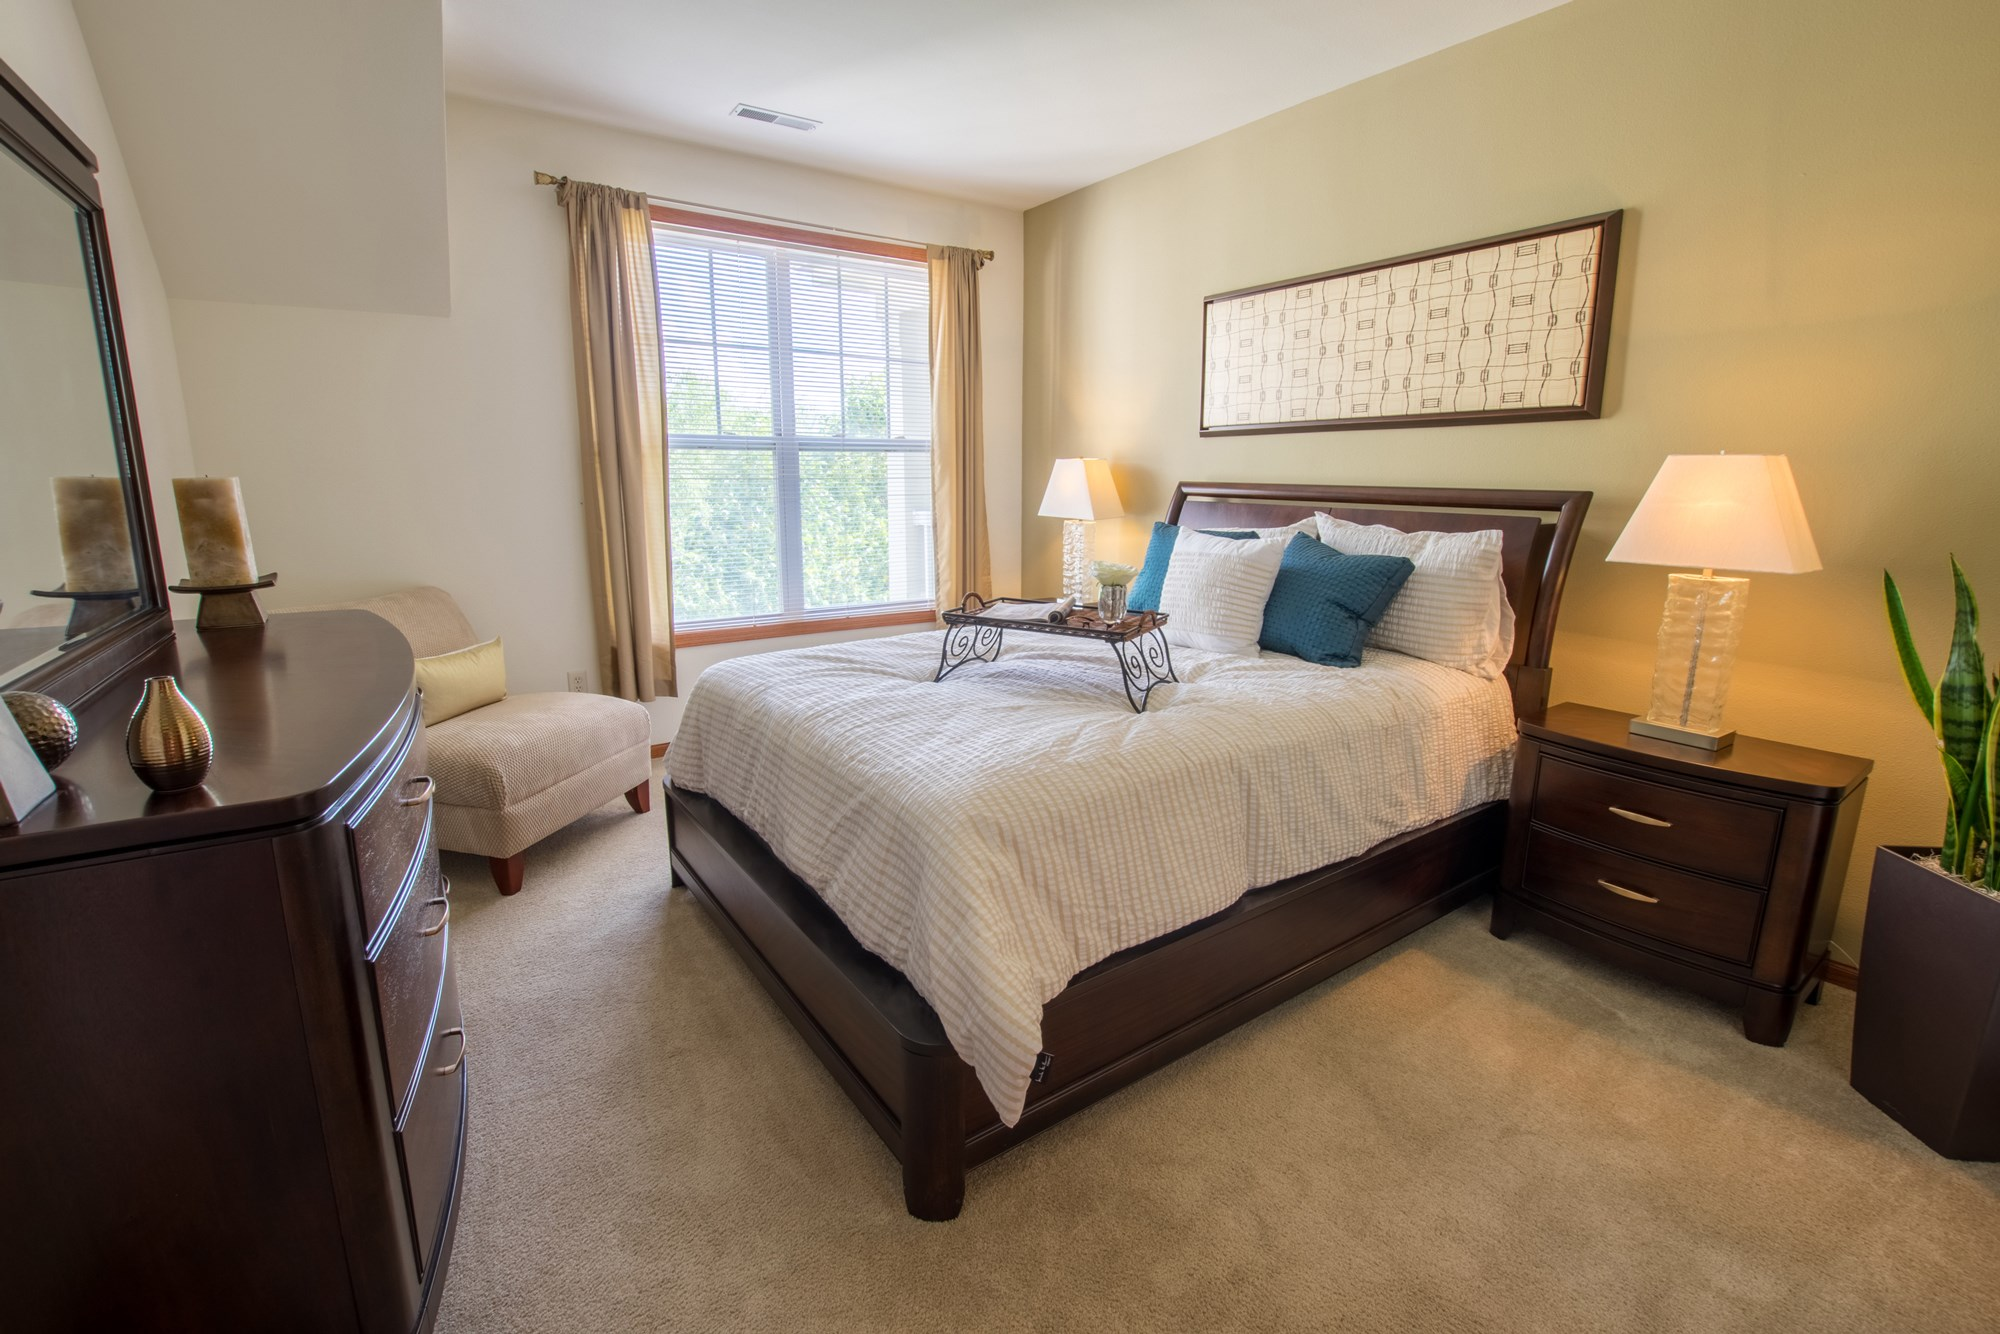 Bedroom at Norhardt Crossing Apartments in Brookfield, WI